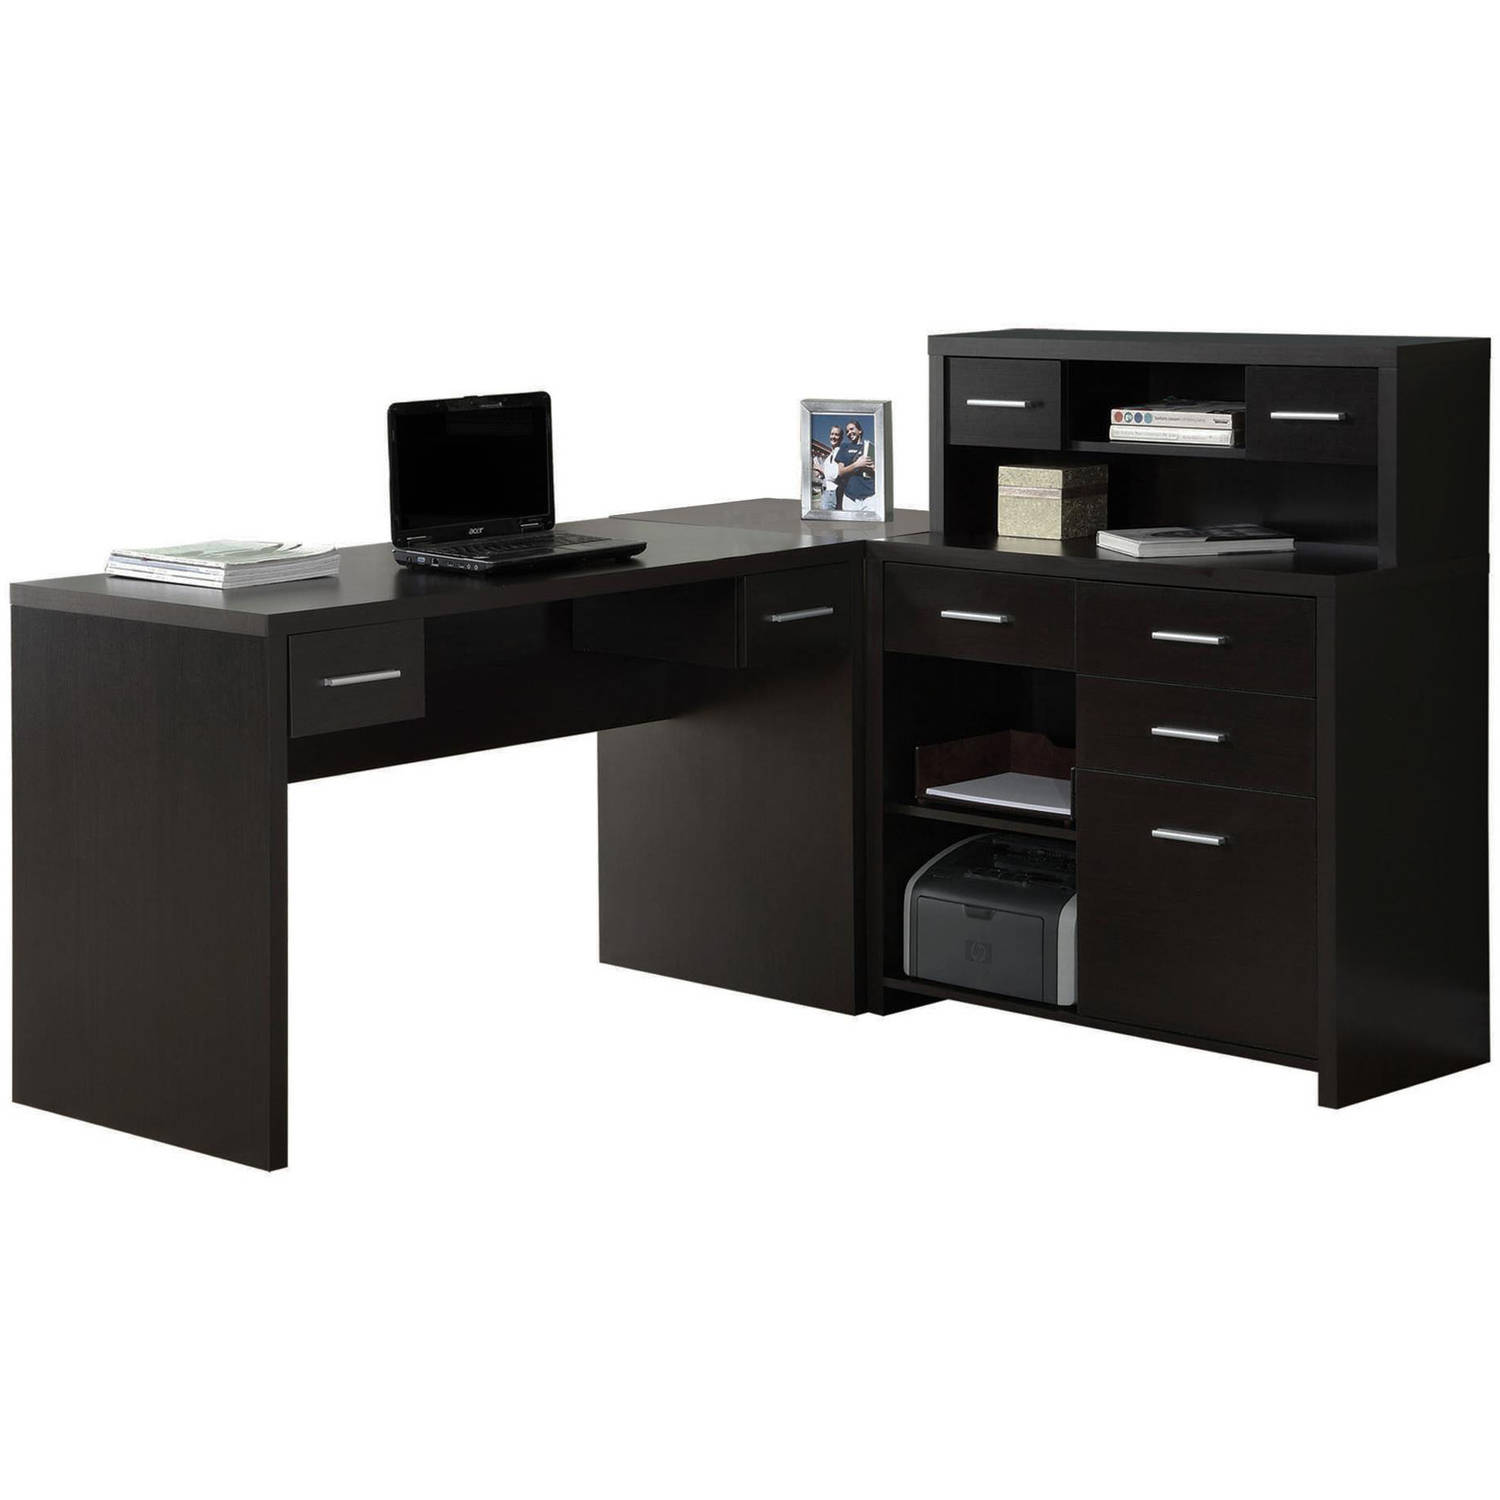 monarch cappuccino hollowcore lshaped home office desk